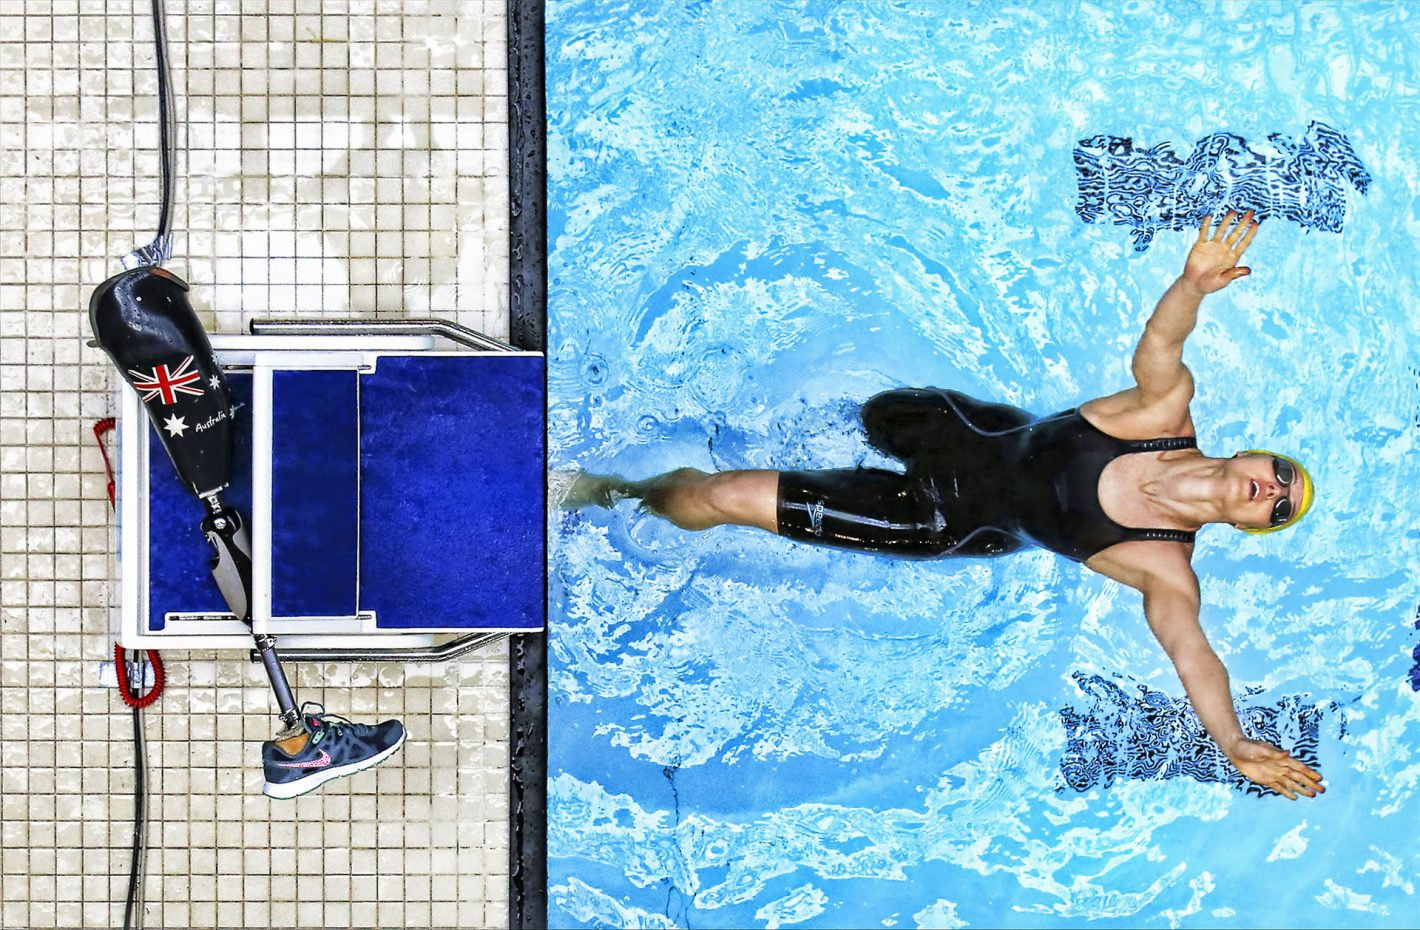 GLASGOW, SCOTLAND - JULY 19: Ellie Cole of Australia dives into the pool during Day Seven of The IPC Swimming World Championships at Tollcross Swimming Centre on July 19, 2016 in Glasgow, Scotland. (Photo by Ian MacNicol/Getty Images) *** Local Caption *** Ellie Cole